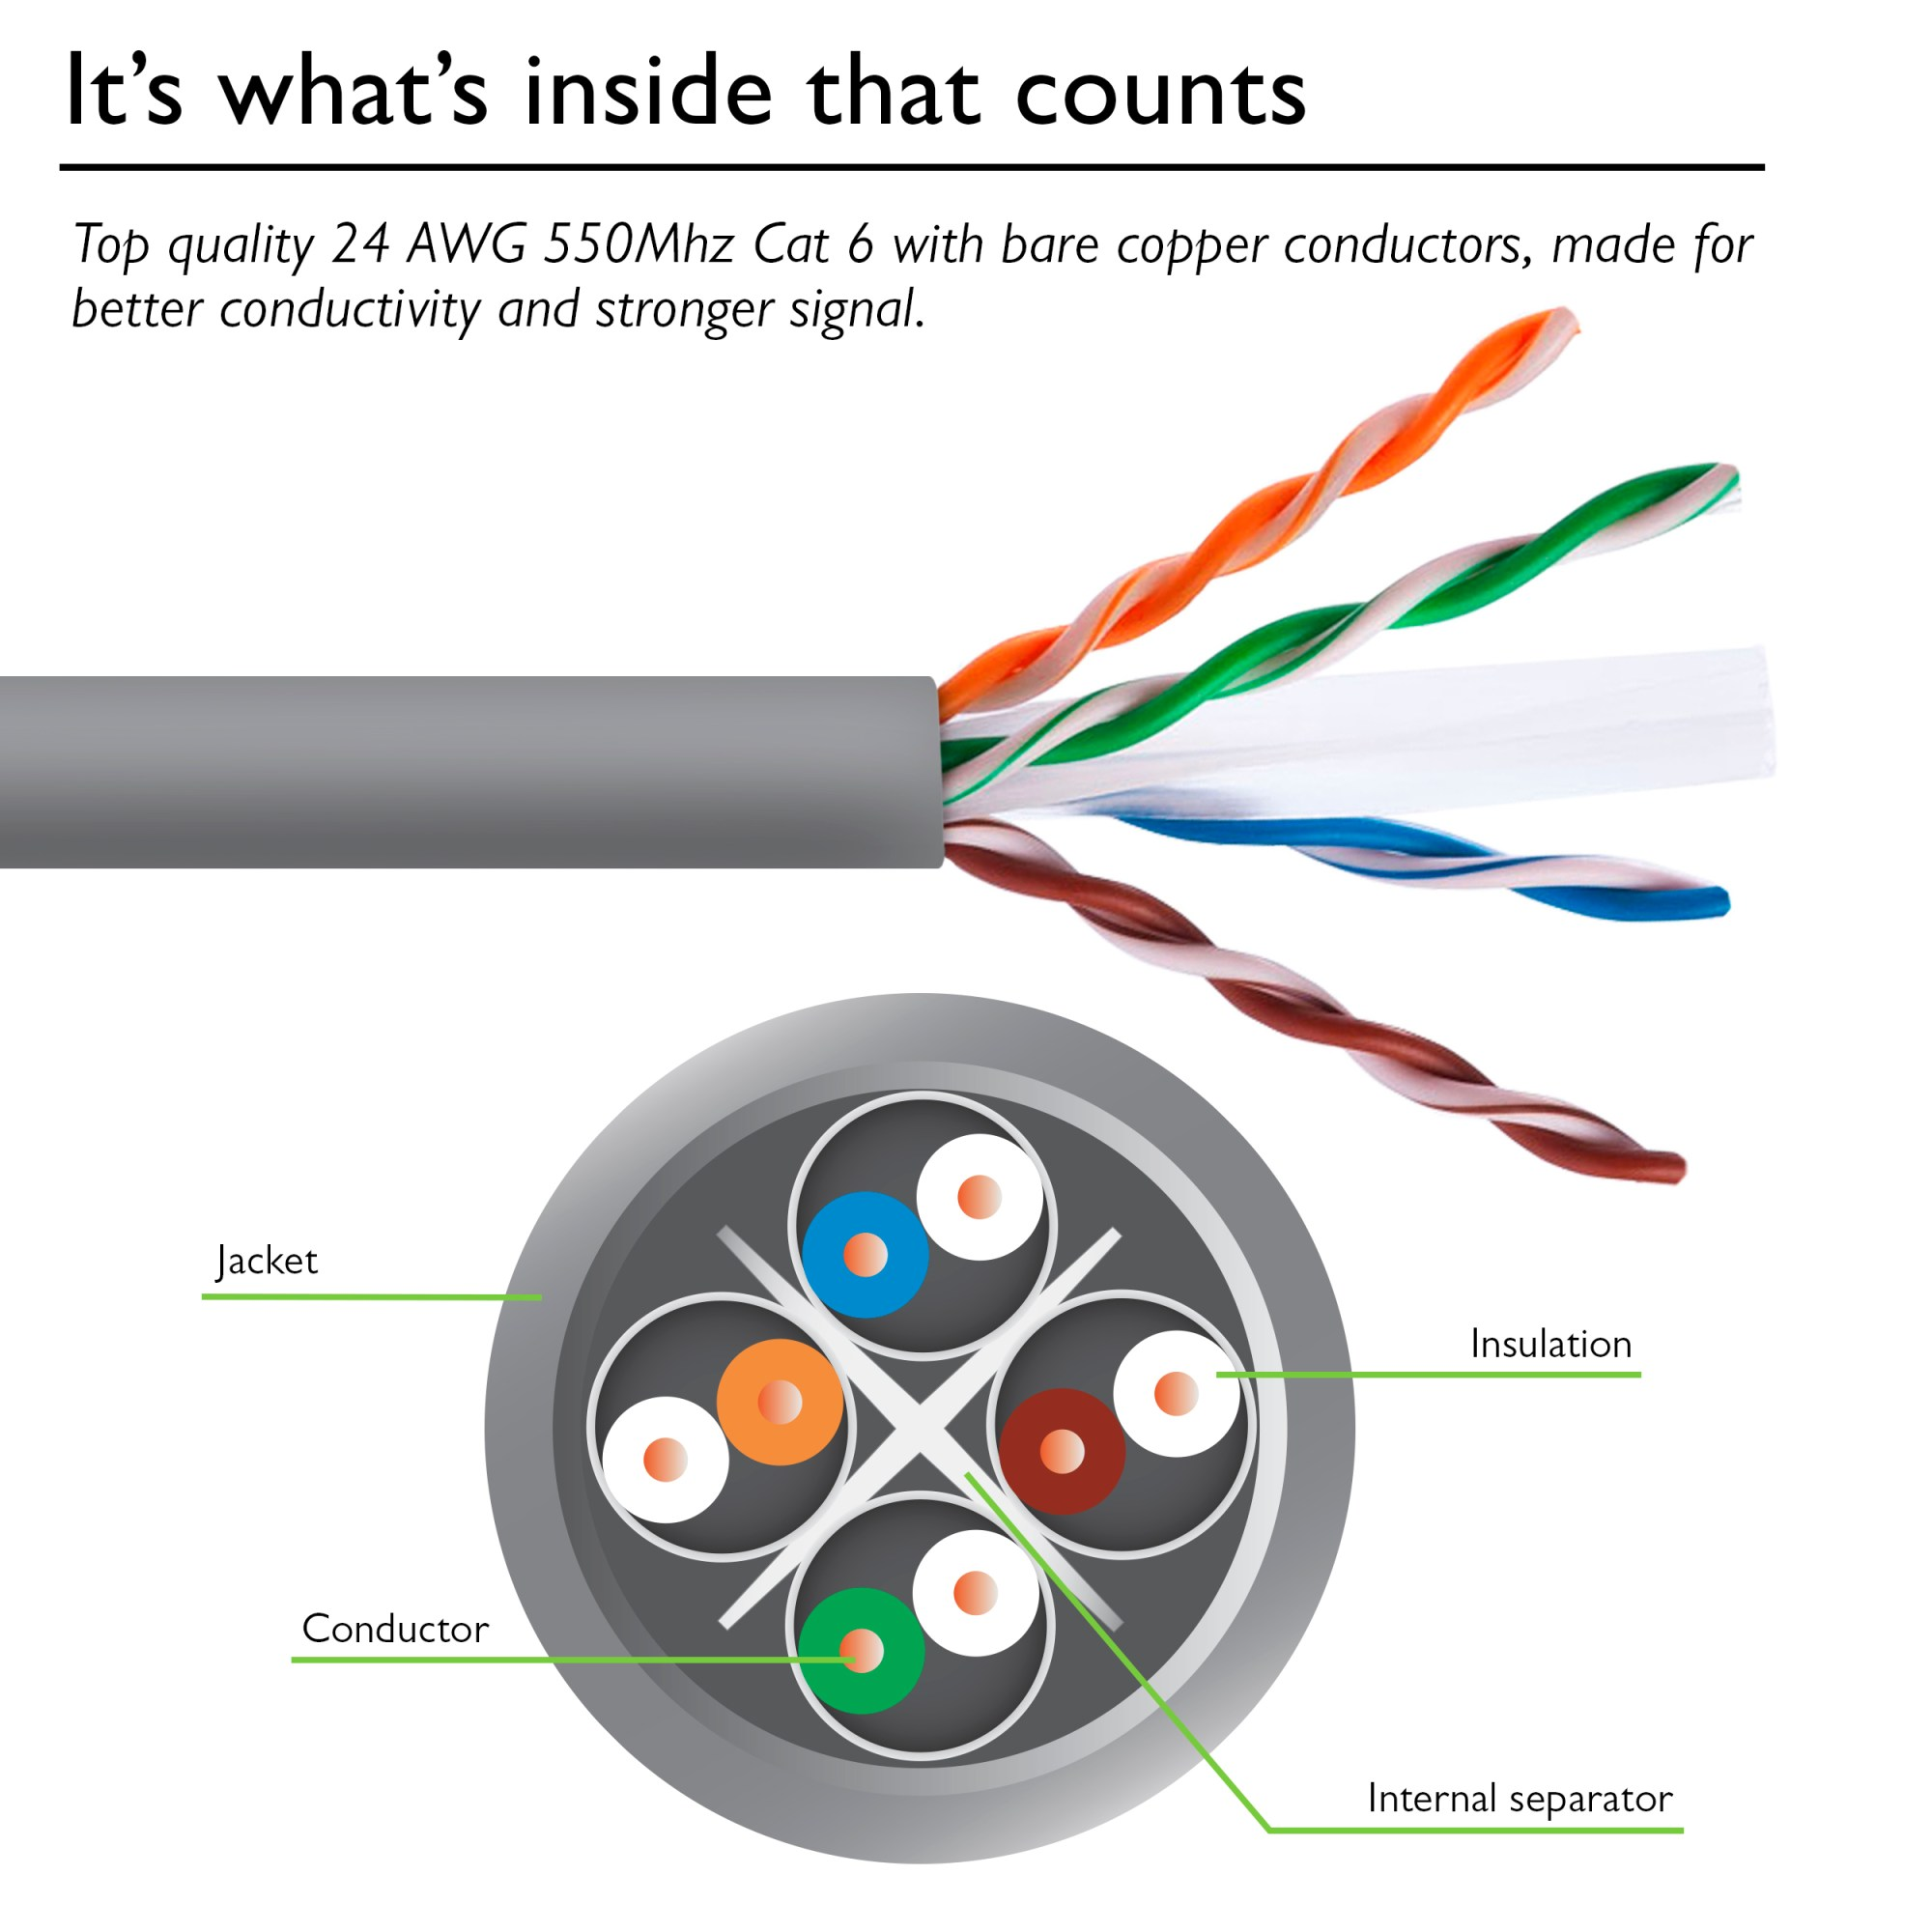 hight resolution of gearit 1000 feet bulk cat6 ethernet cable cat 6 550mhz 24awg full cat 5 network wiring diagram cat 6 24 awg cable wiring diagram